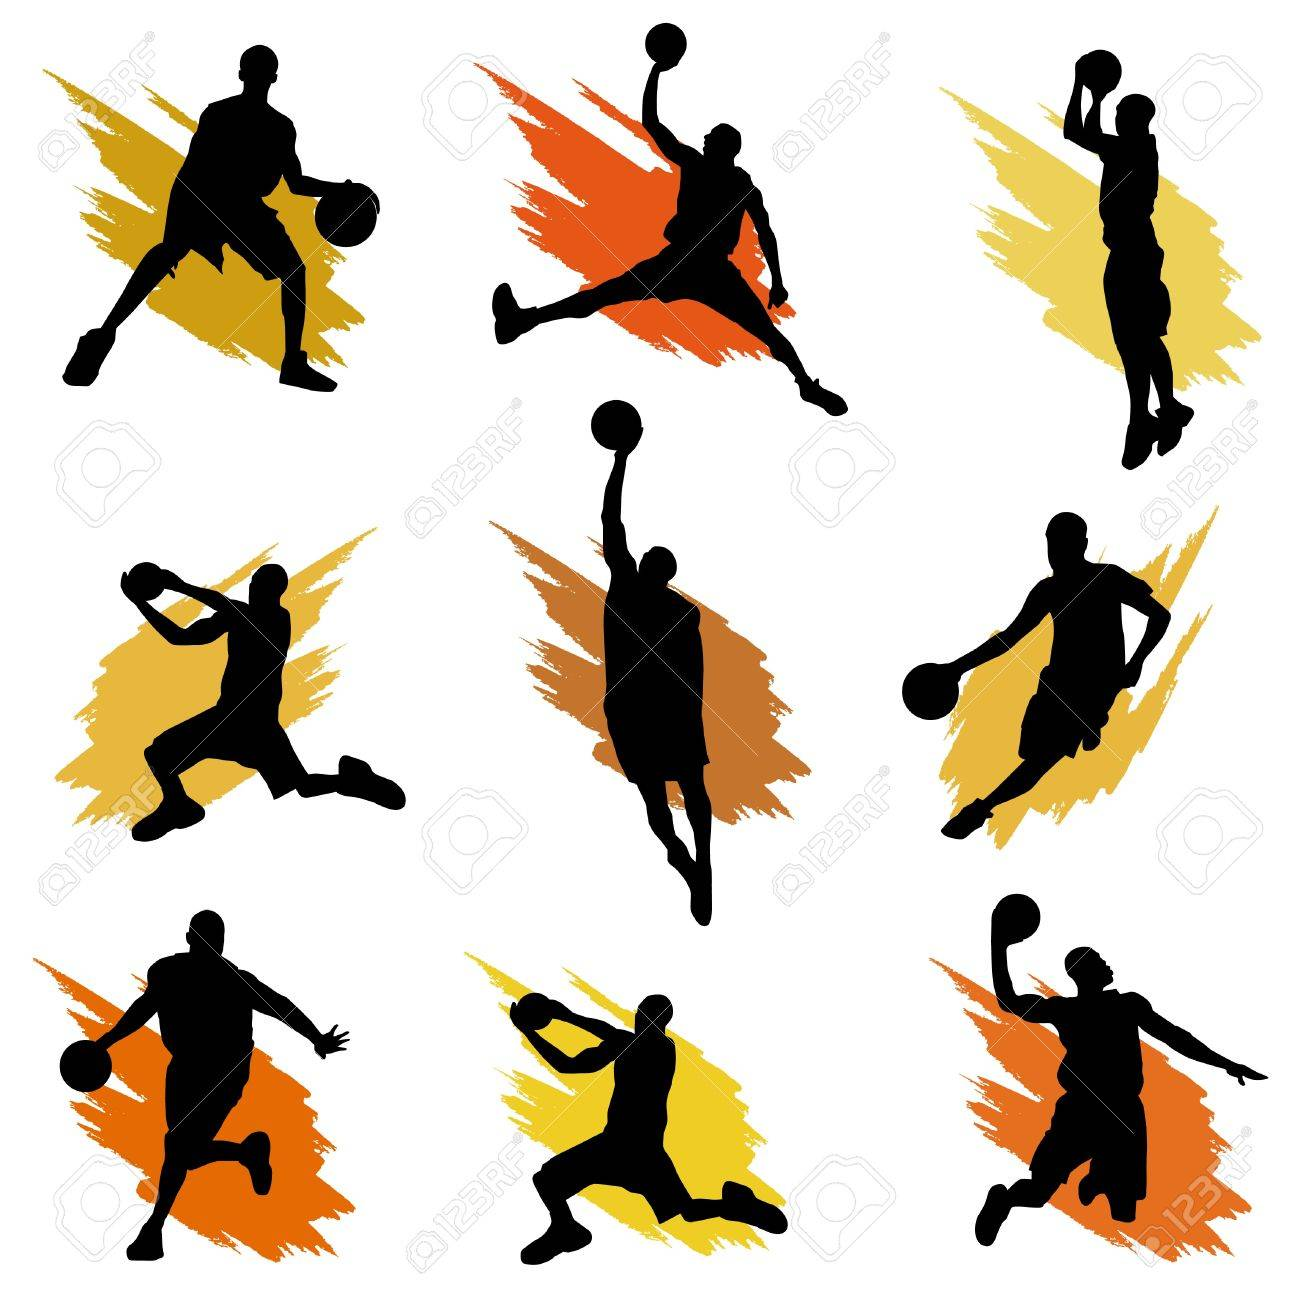 basketball Stock Vector - 9717440